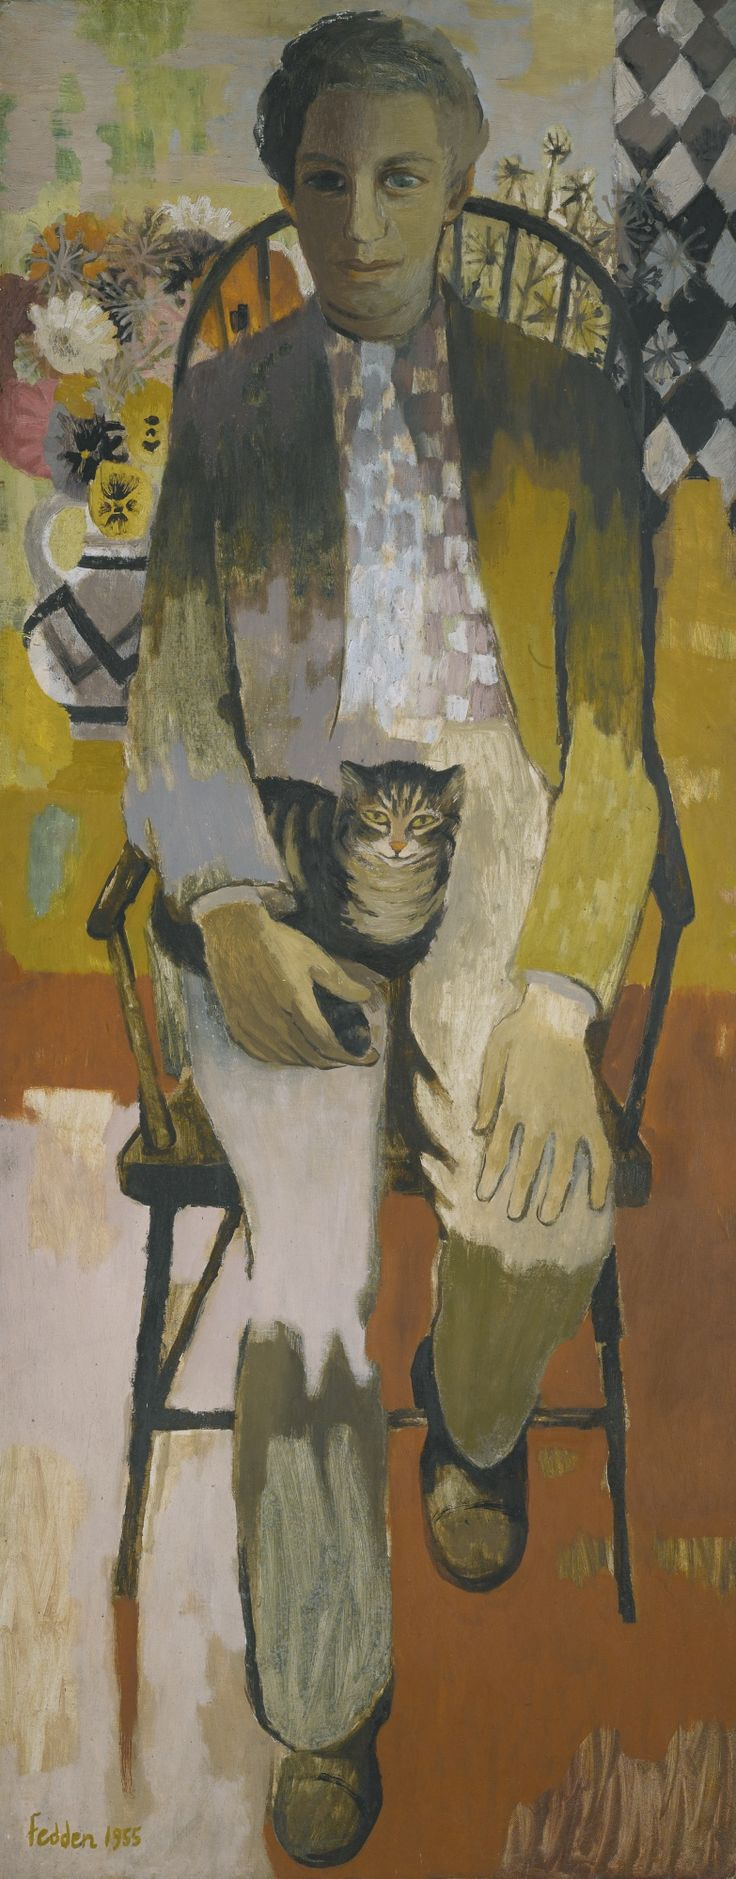 'Julian Trevelyan' by Mary Fedden, 1955 (oil on canvas)